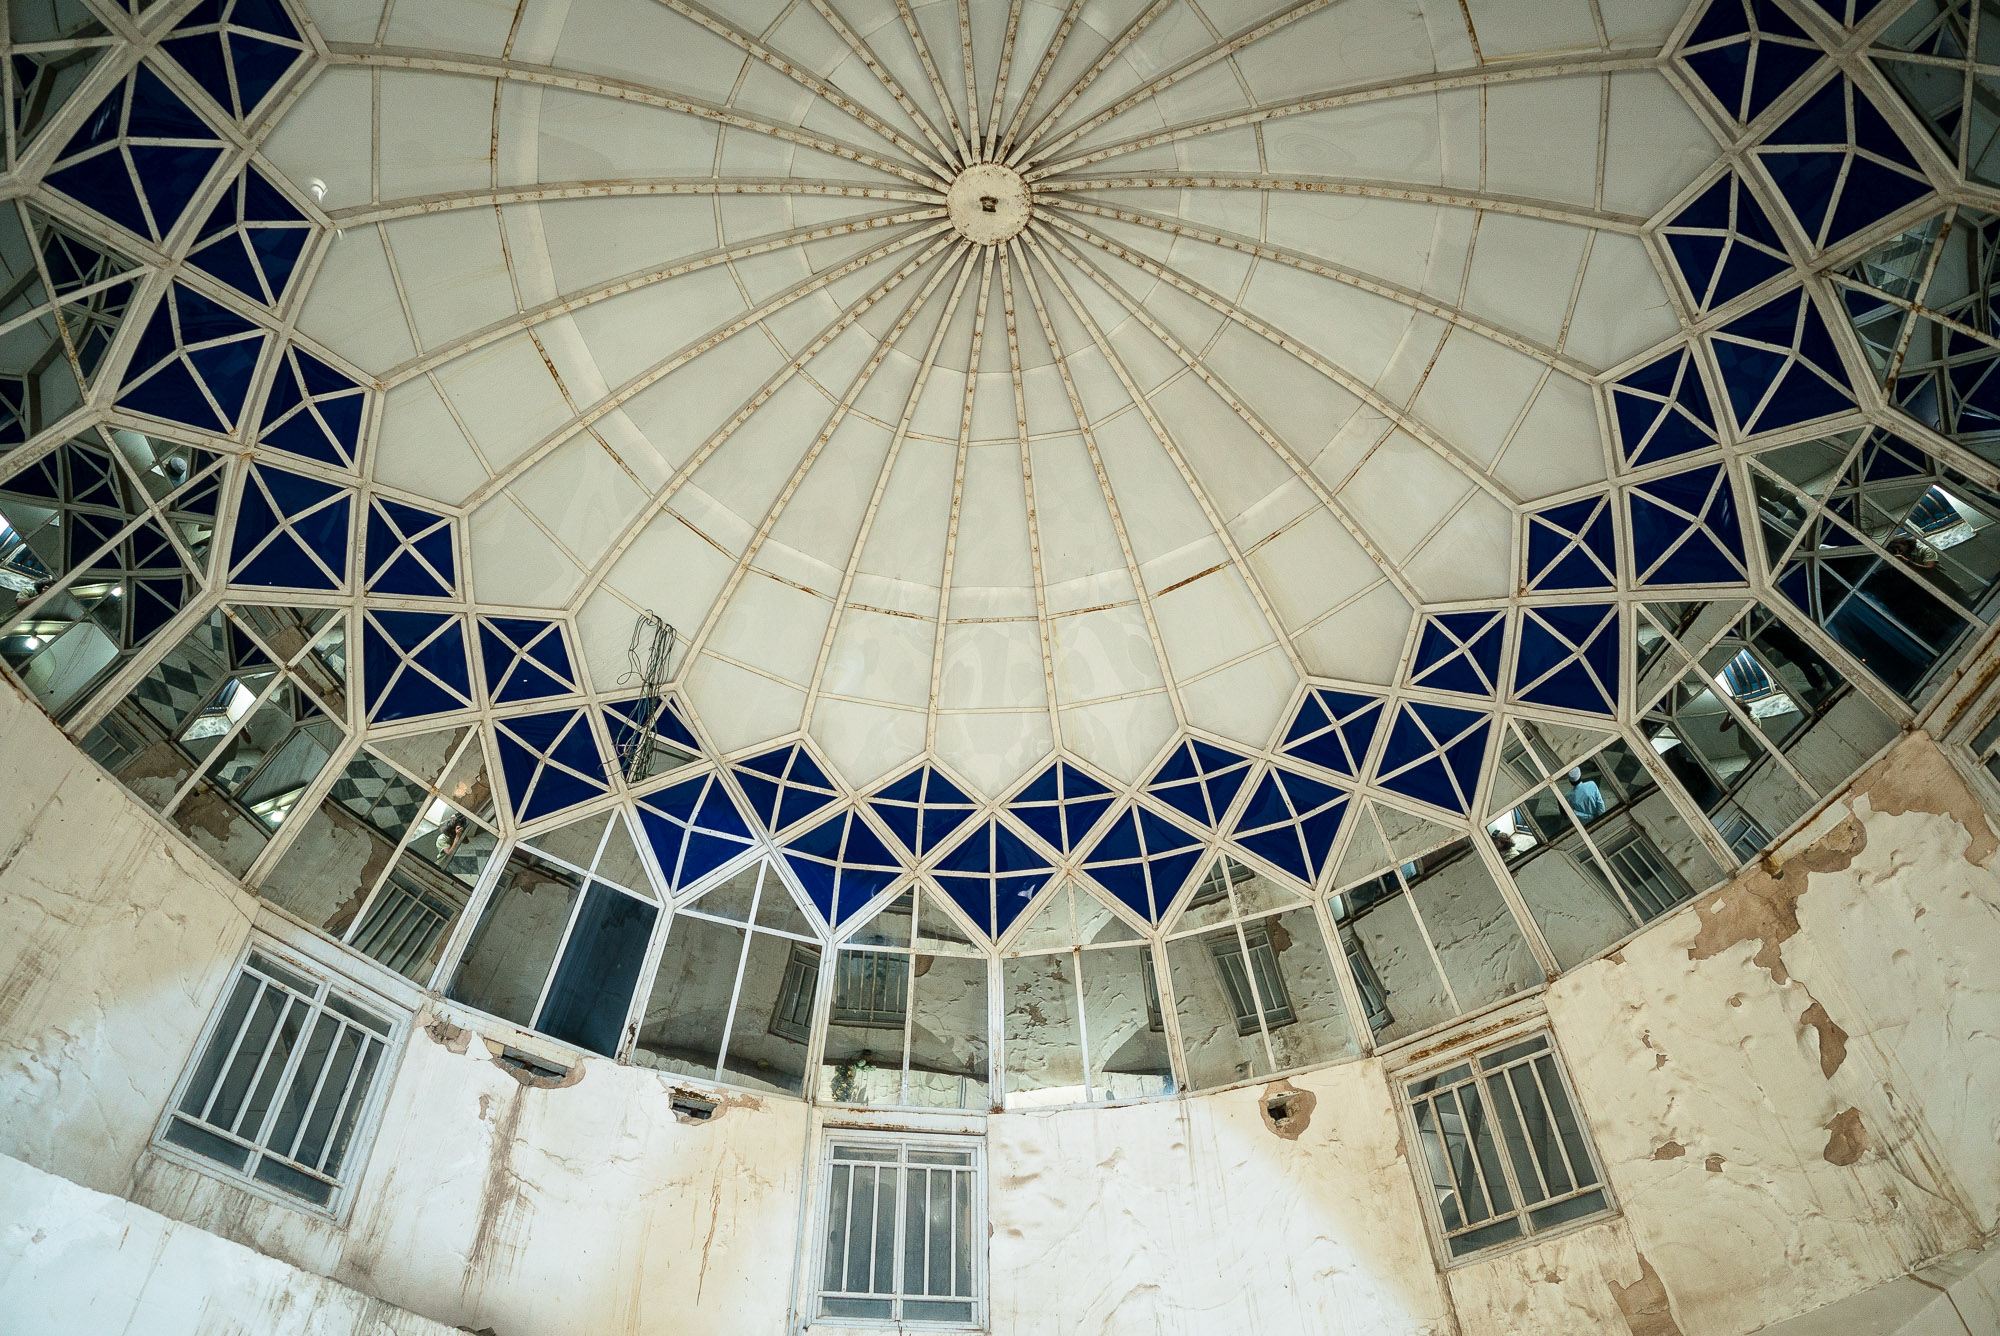 dome of the madrasa